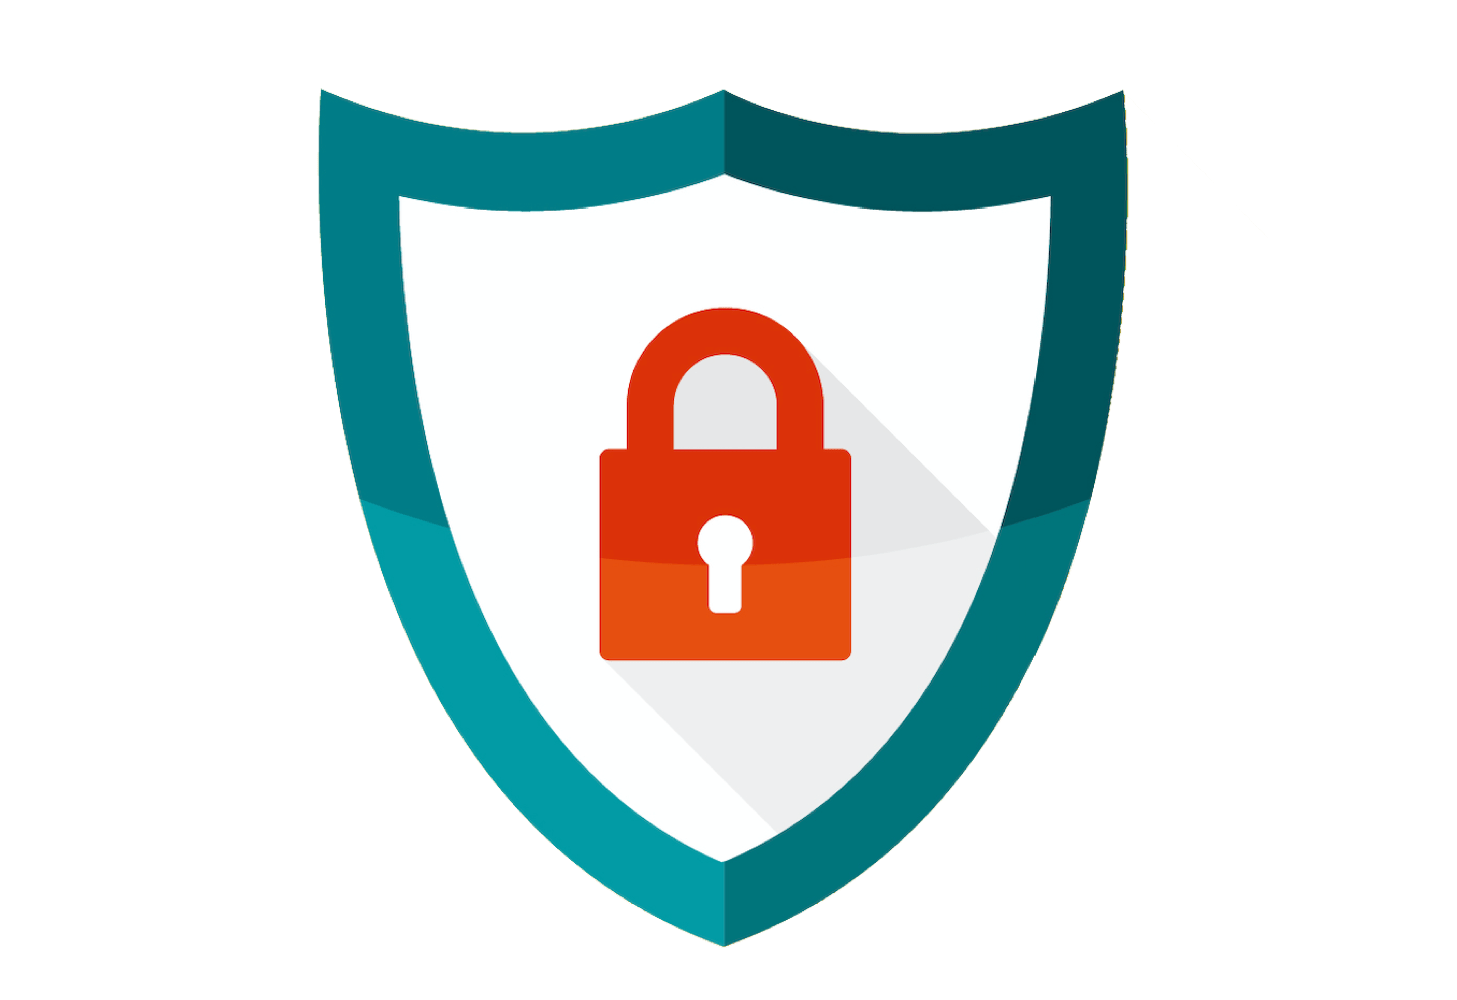 crypto security shield